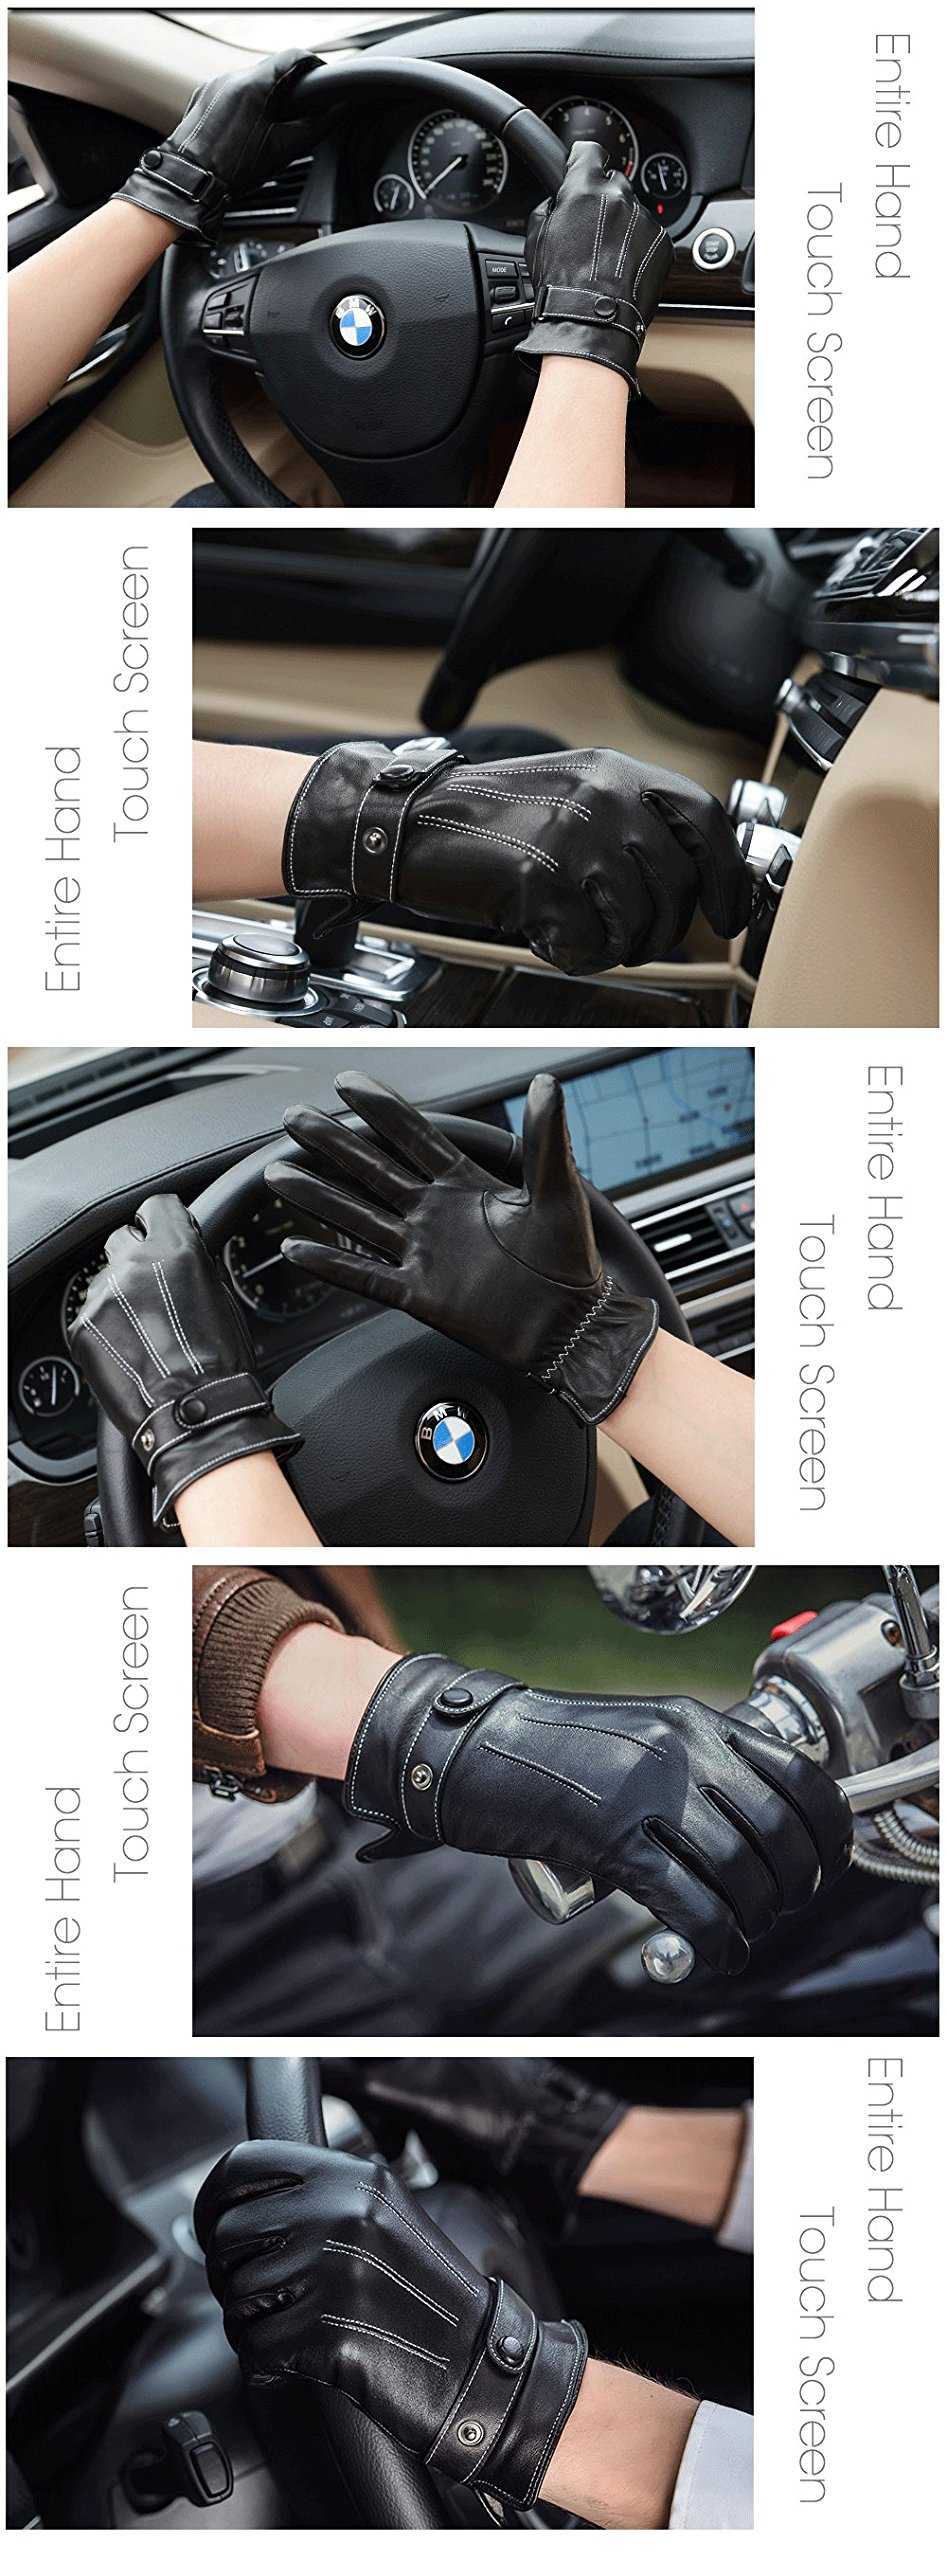 Harrms Best Luxury Touchscreen Italian Nappa Leather Gloves for men's Texting Driving (XL-9.4''(US Standard Size), BLACK) by Harrms (Image #4)